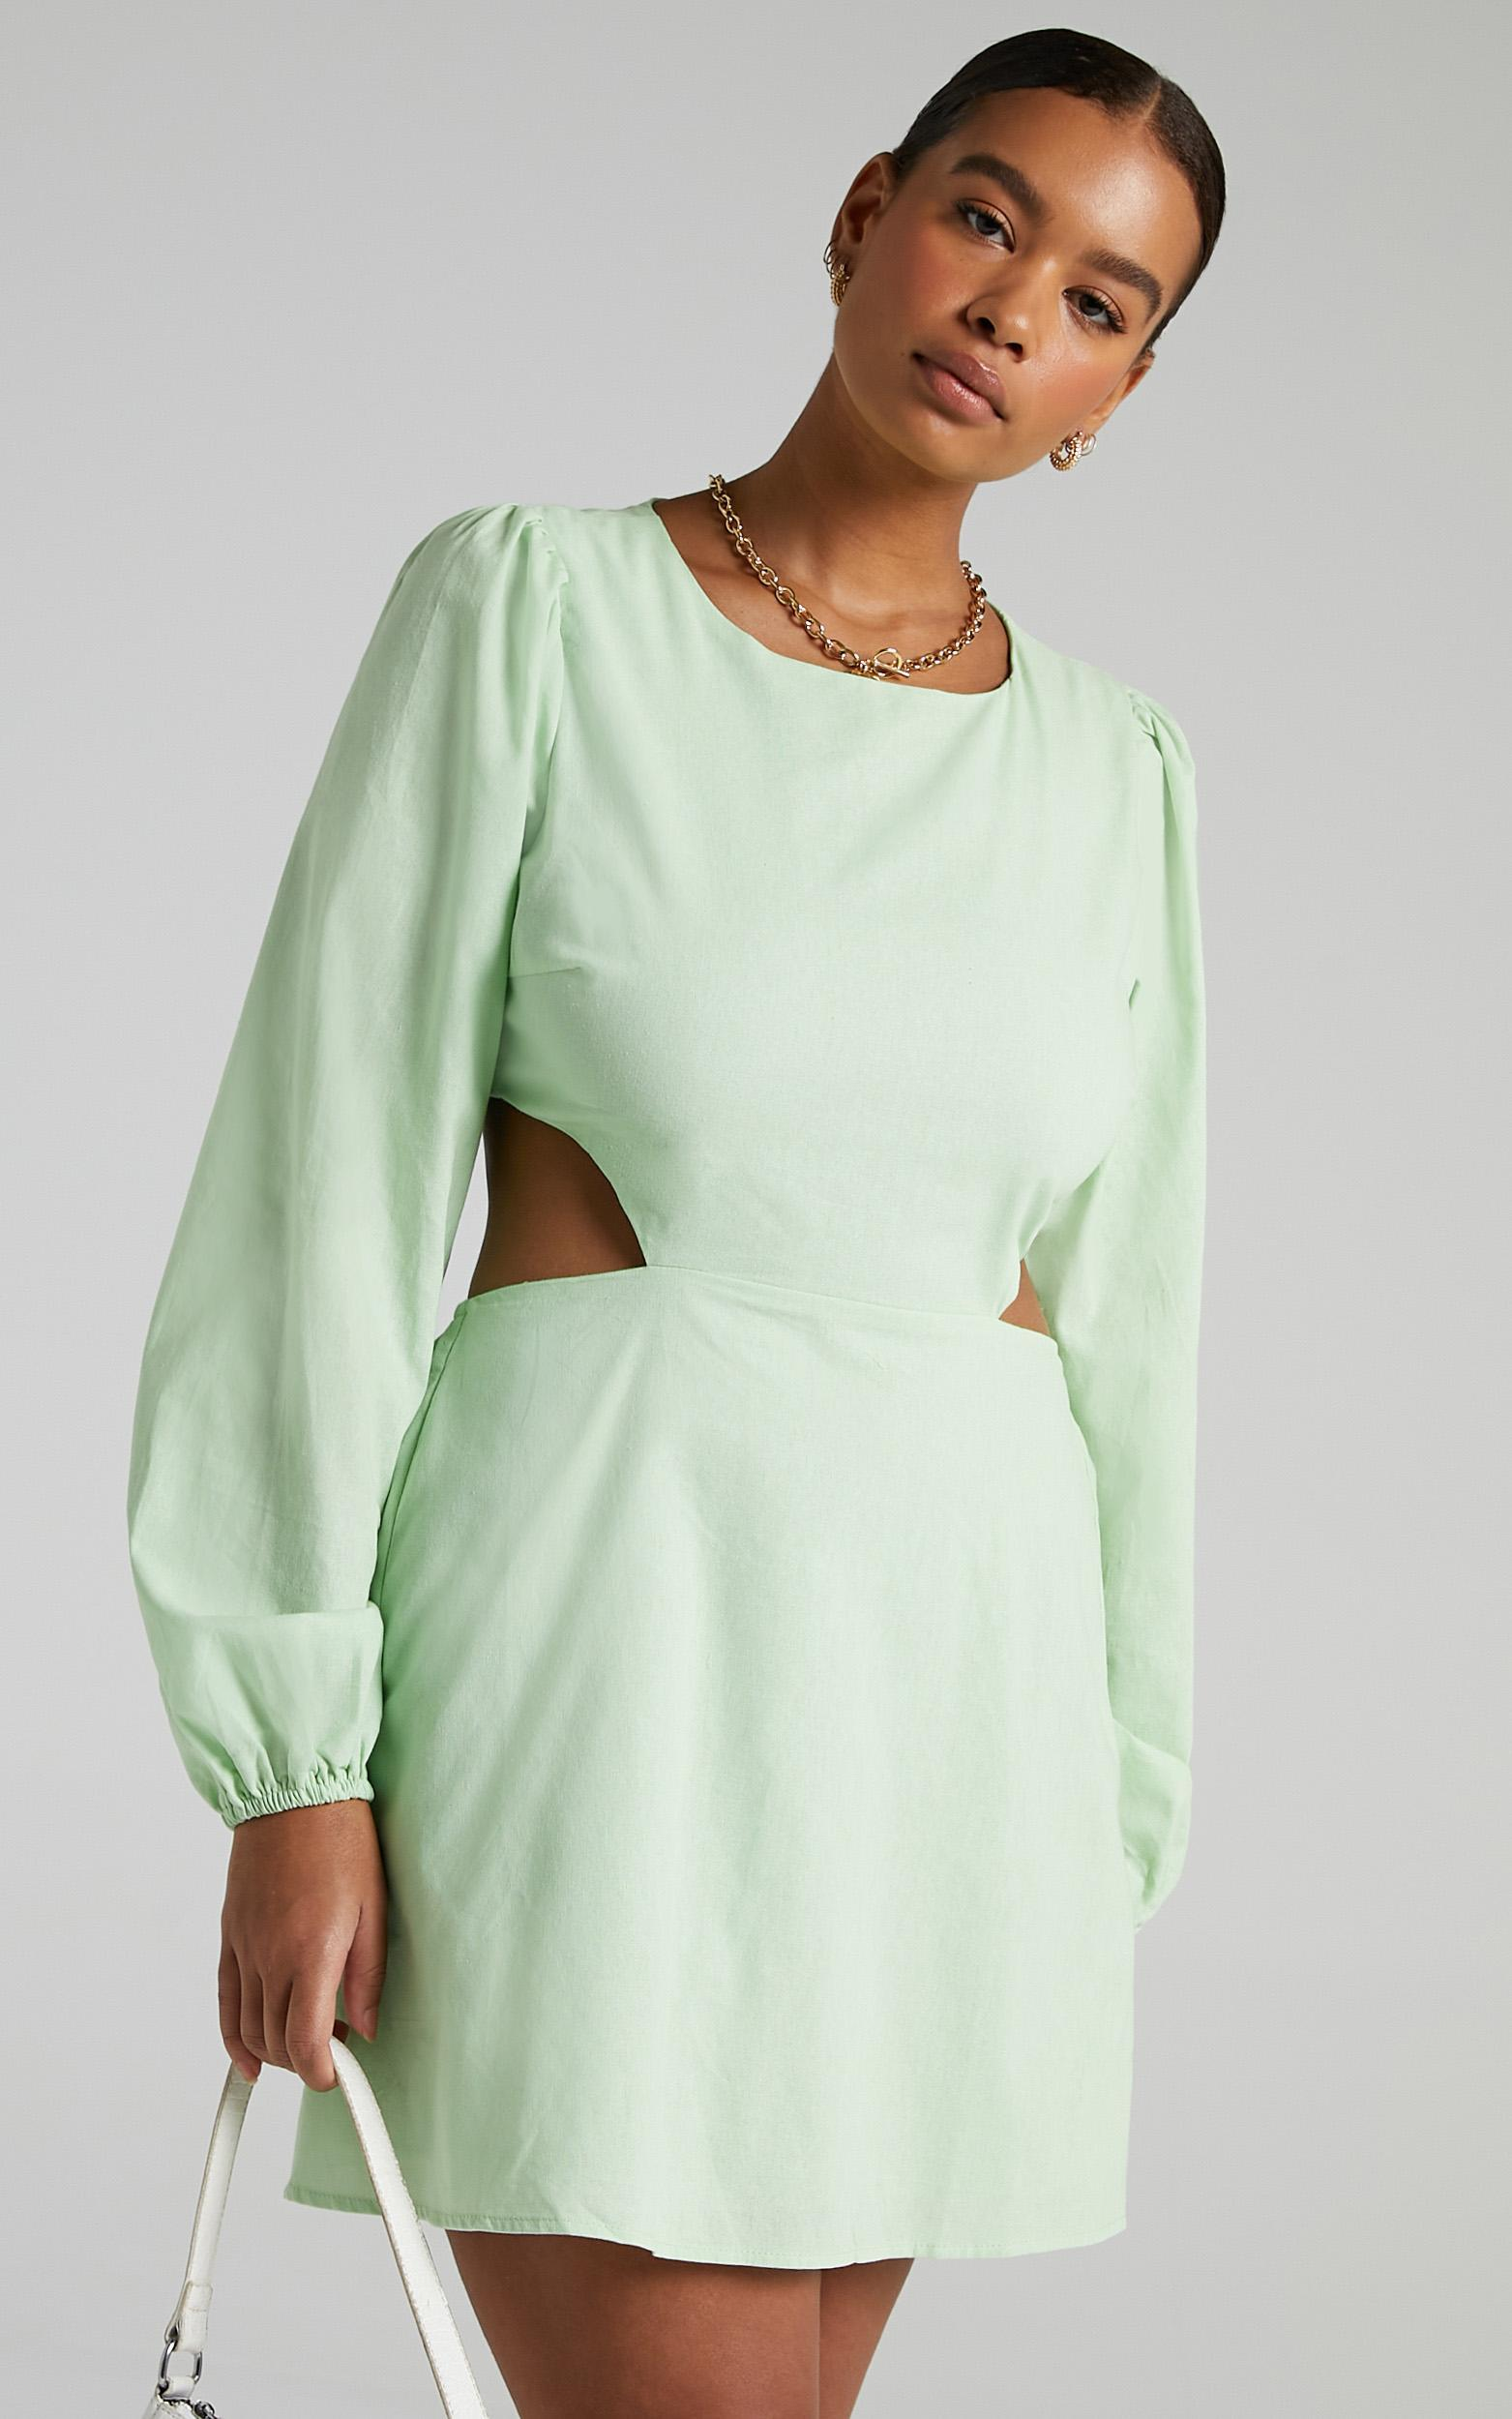 Egeria Dress in Apple Green - 6 (XS), Green, hi-res image number null